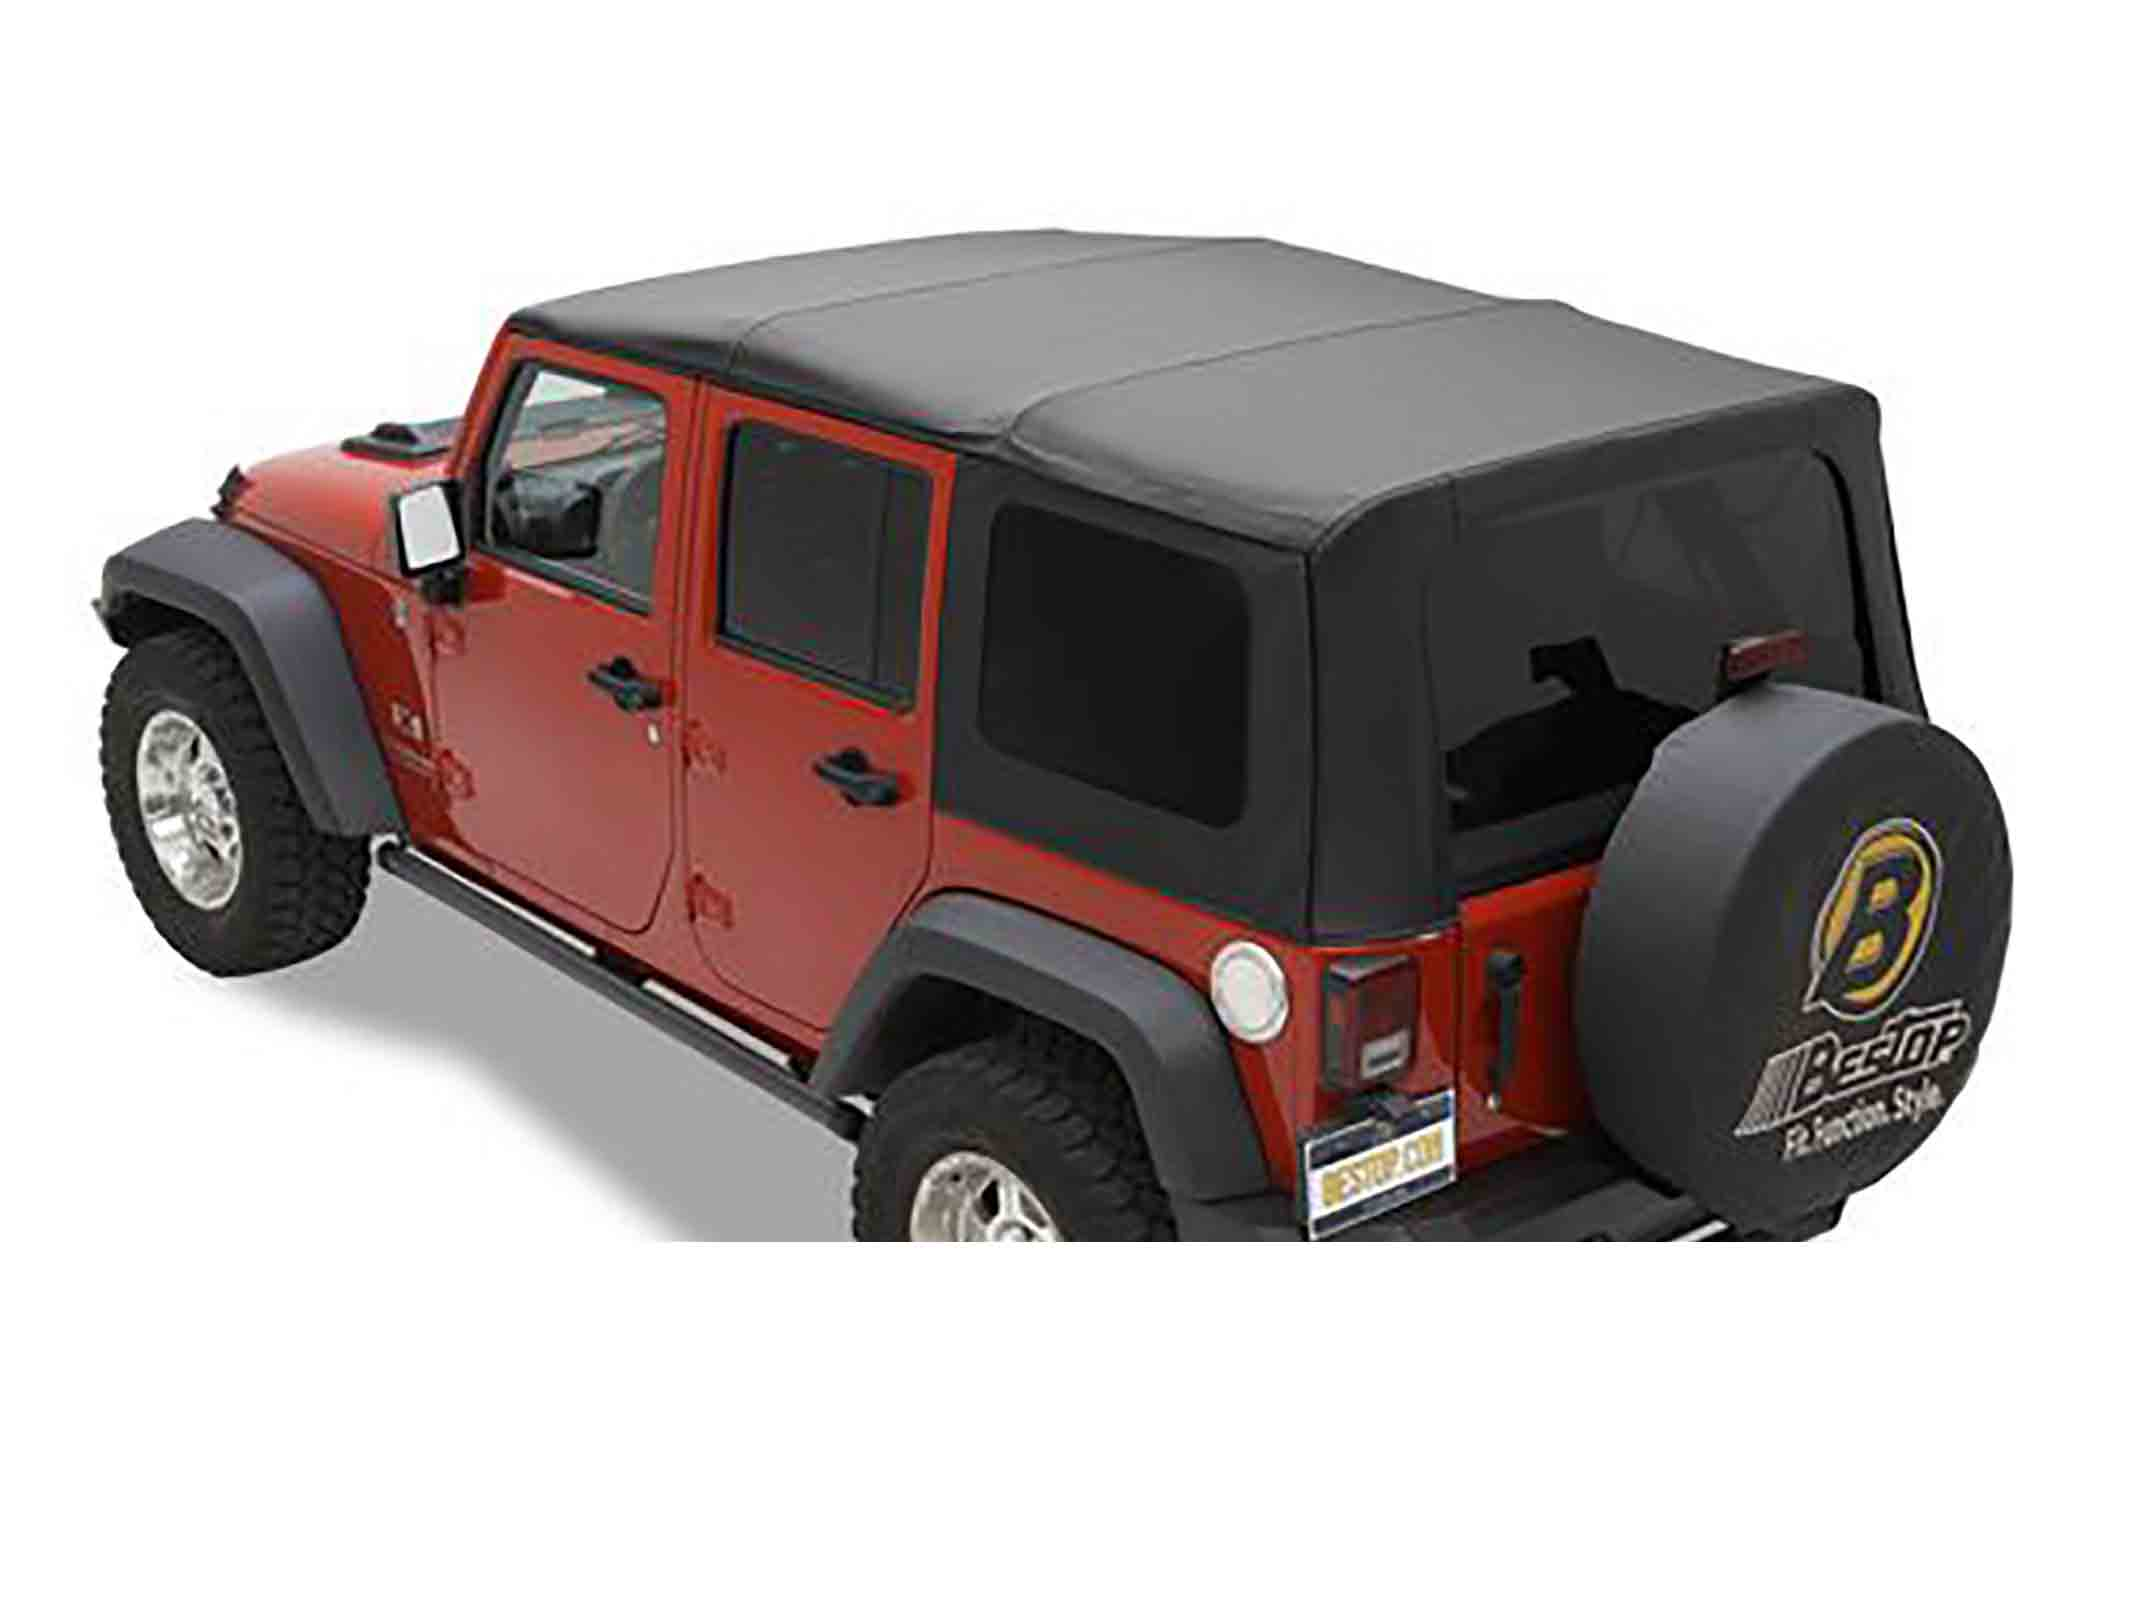 Sailcloth rat wrangler jk unlimited 11 17 softtop soft top capottina ricambio come originale con vetr